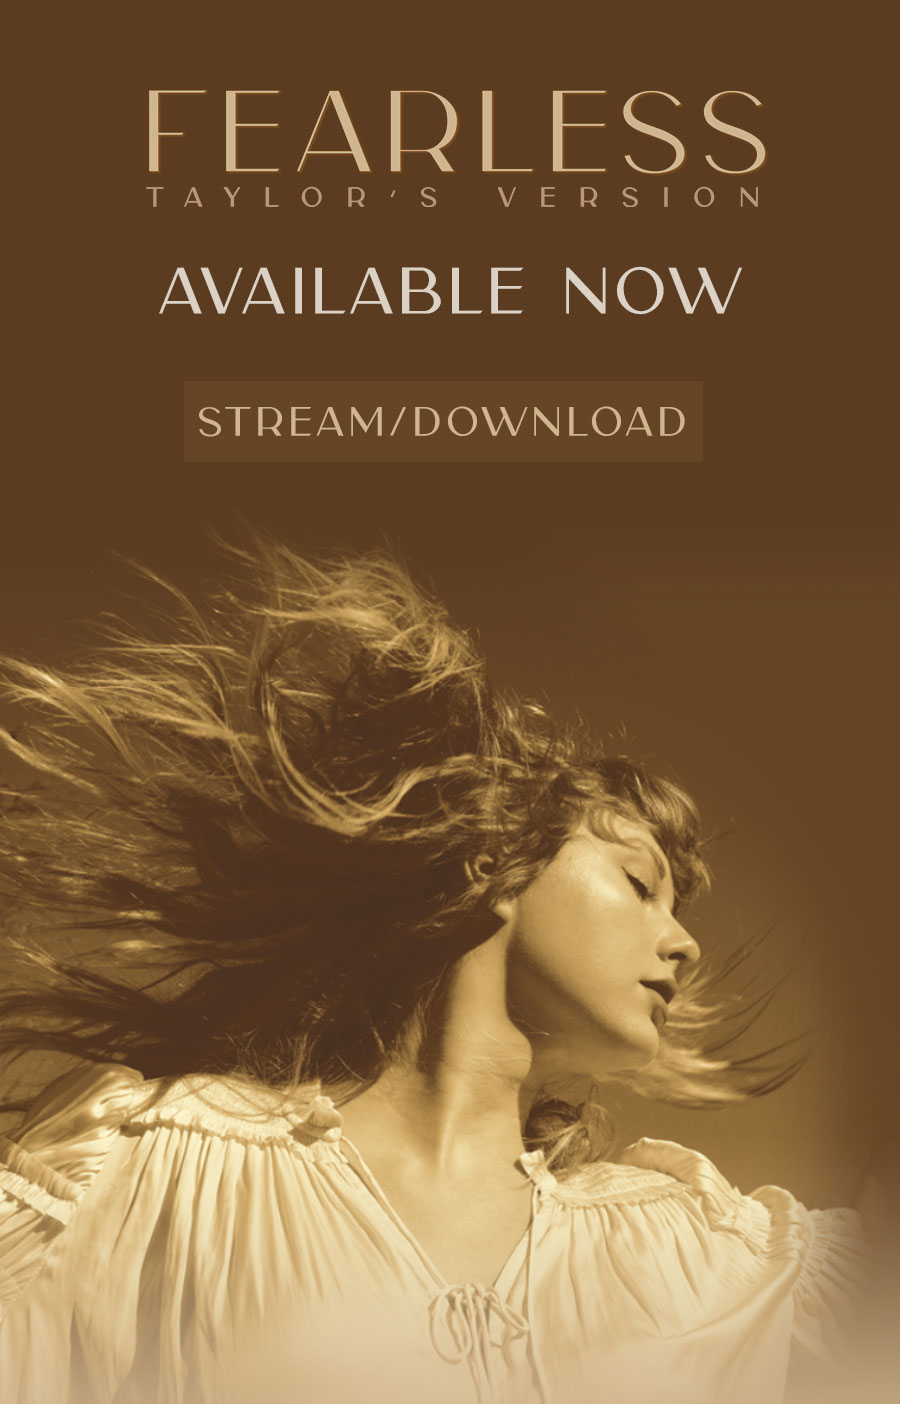 Fearless Taylor's Version Available Now Stream/Download